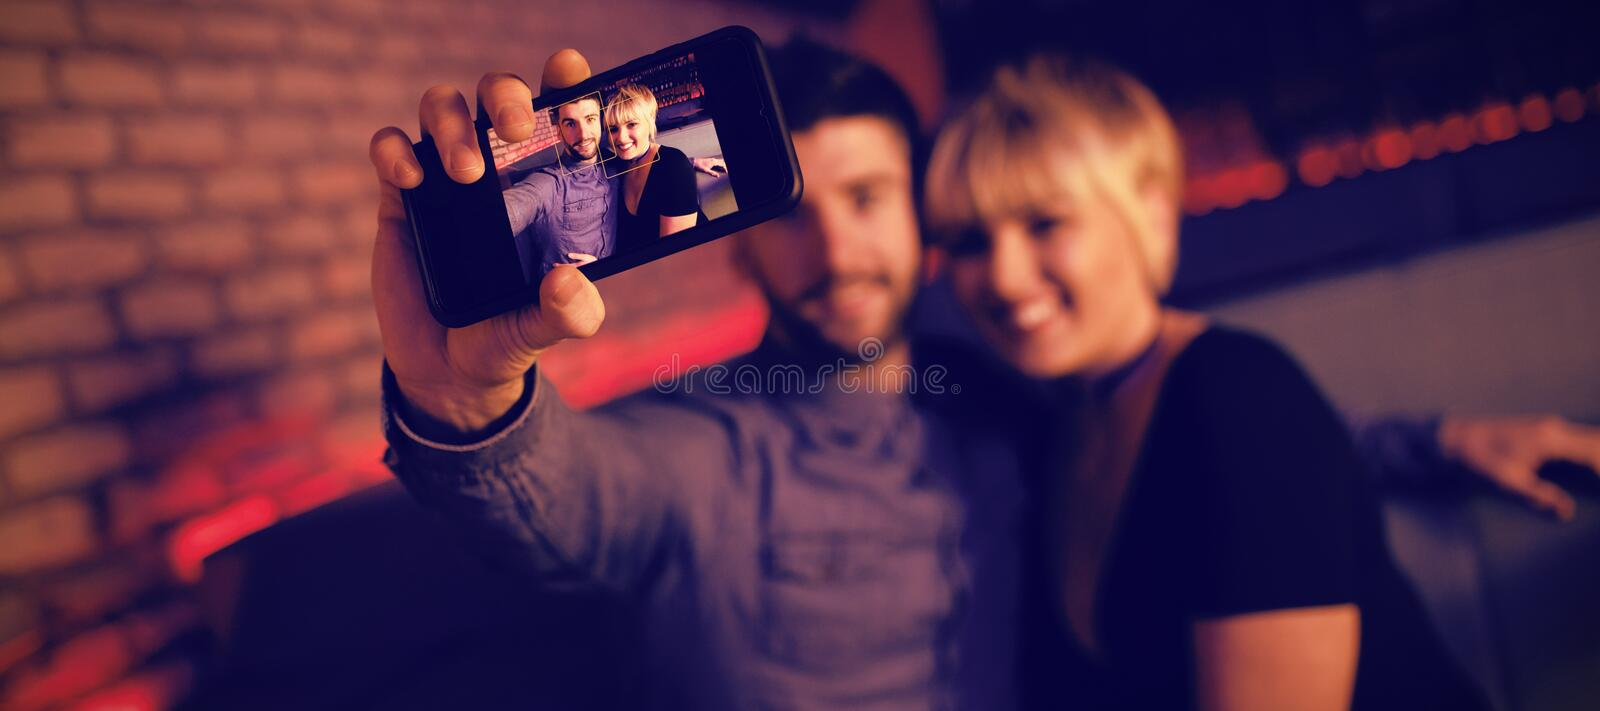 Couple taking selfie on mobile phone in bar royalty free stock images